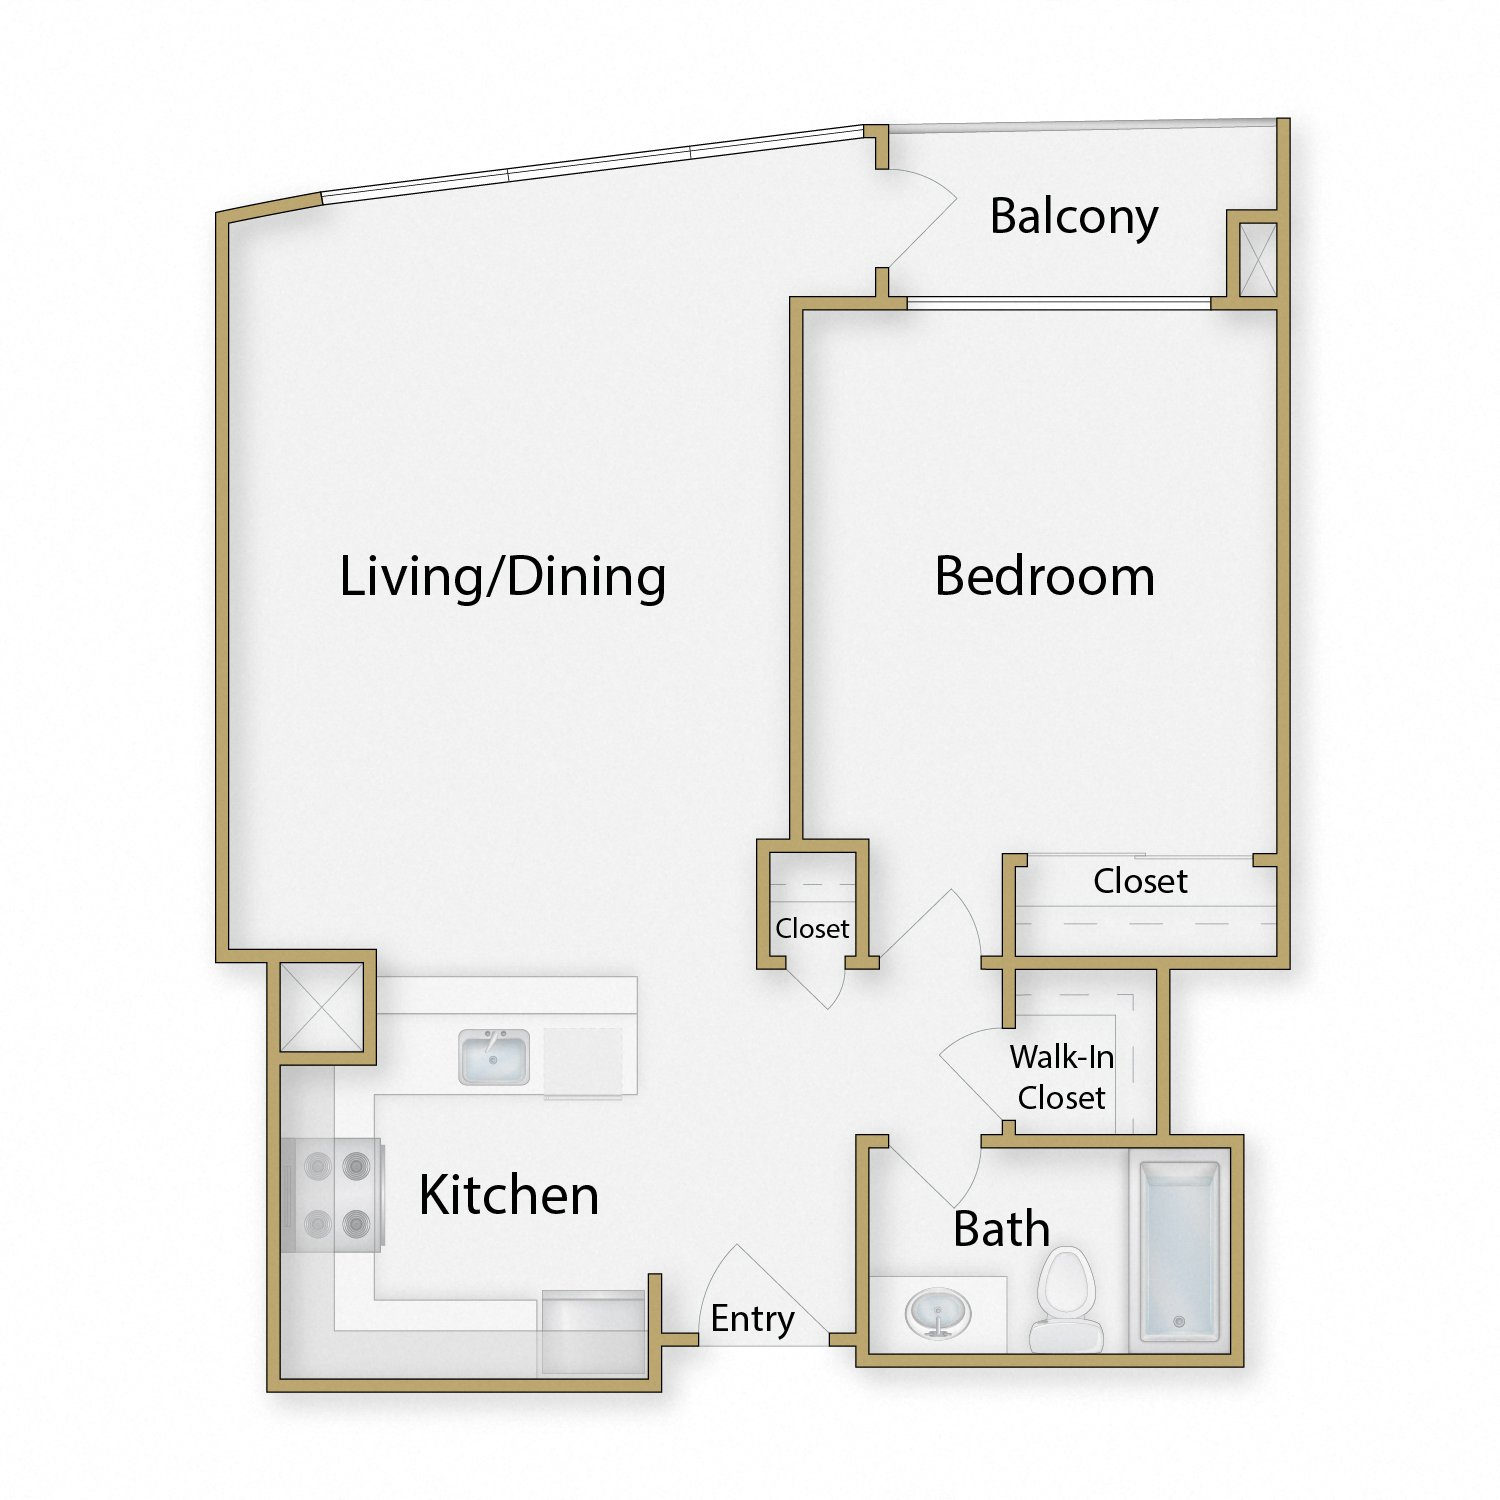 Golden Gate Two floor plan diagram. One bedroom, one bathroom, an open kitchen dining and living area, and a balcony.